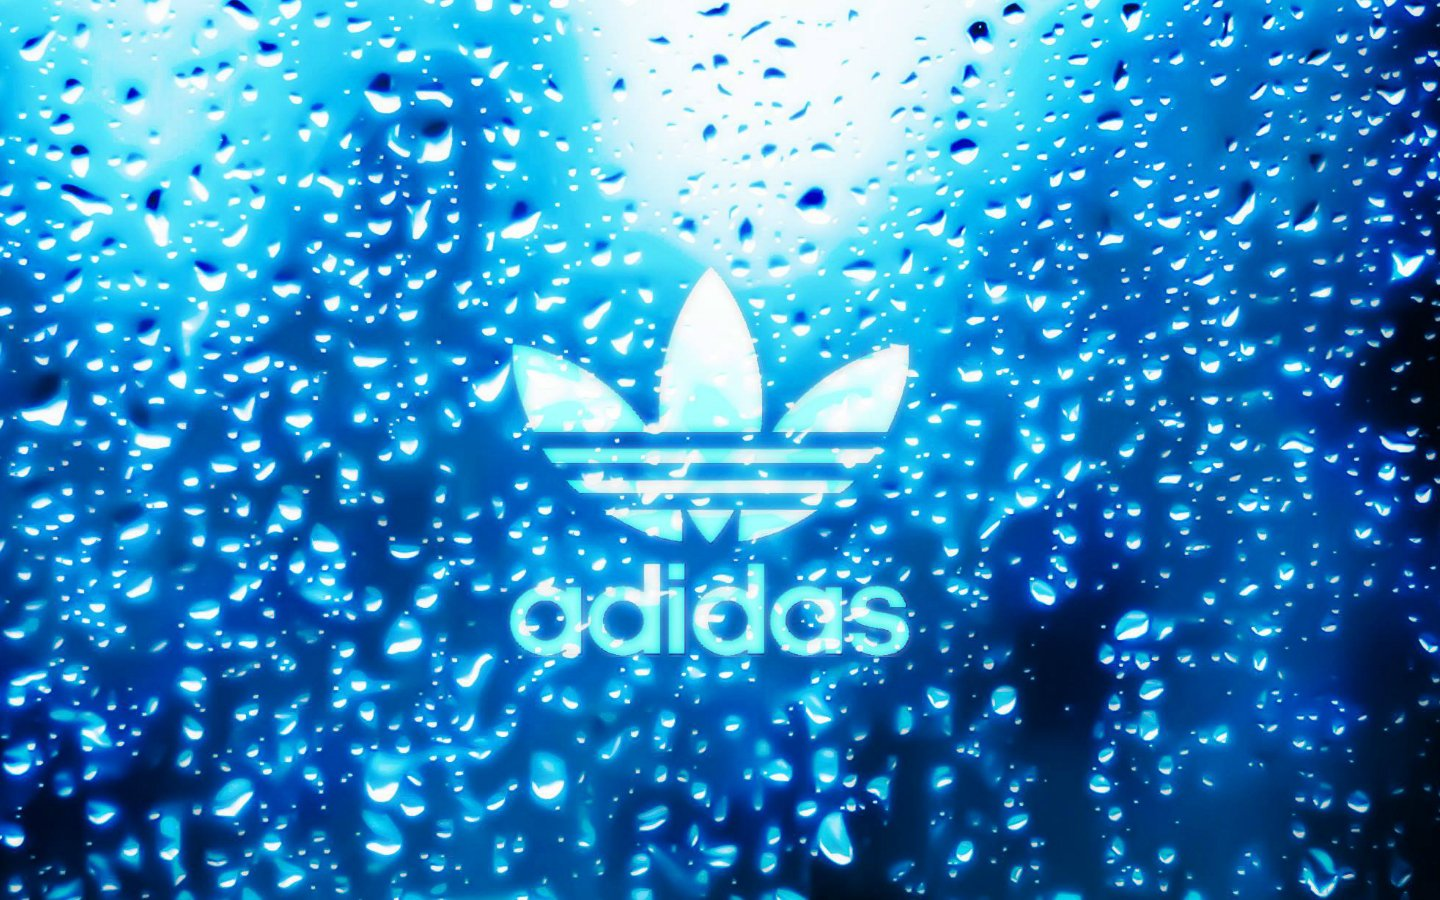 Cool Adidas Wallpapers Collection 9 Wallpapers